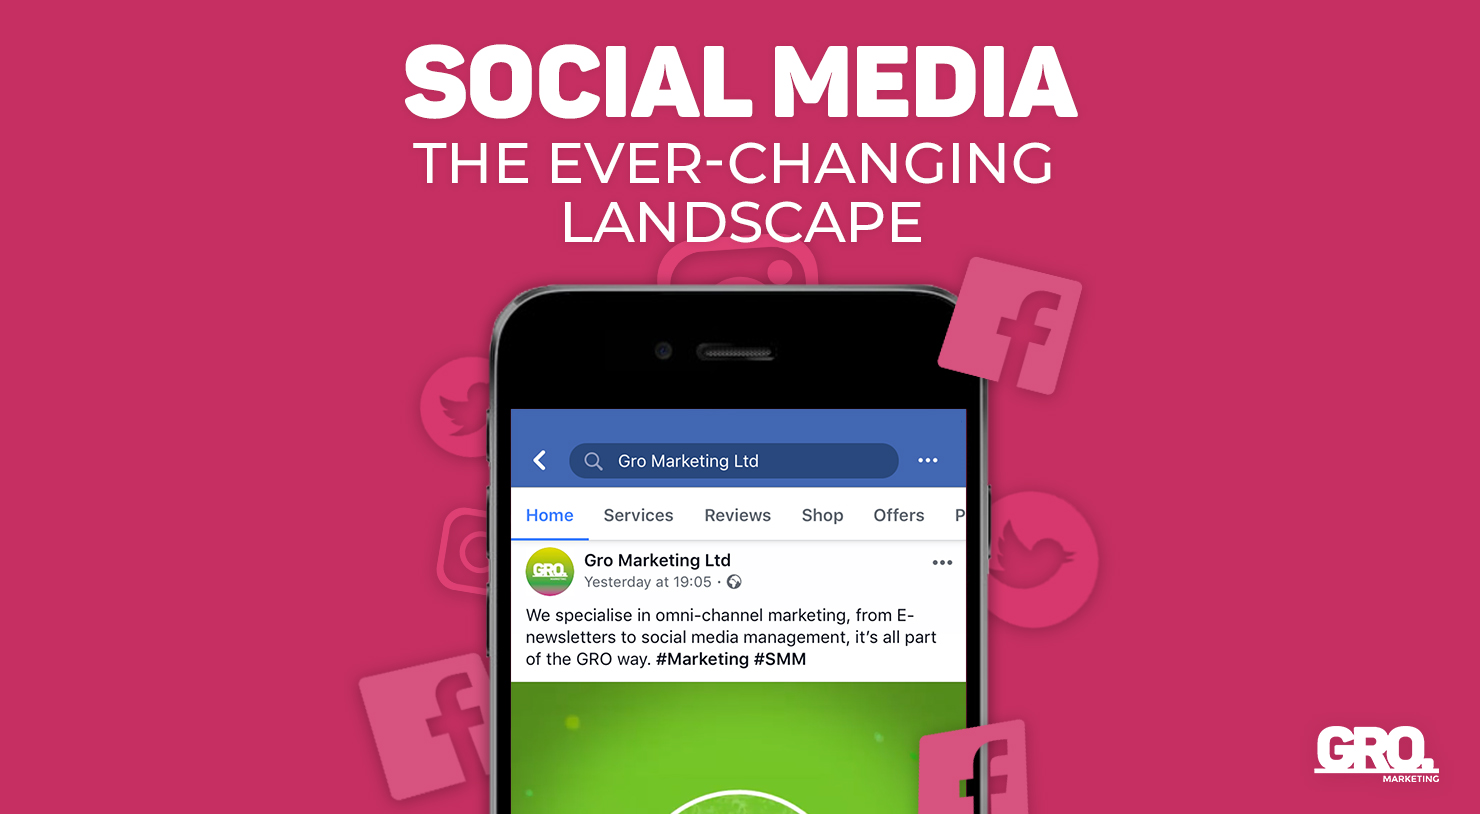 Social Media: The Ever-Changing Landscape